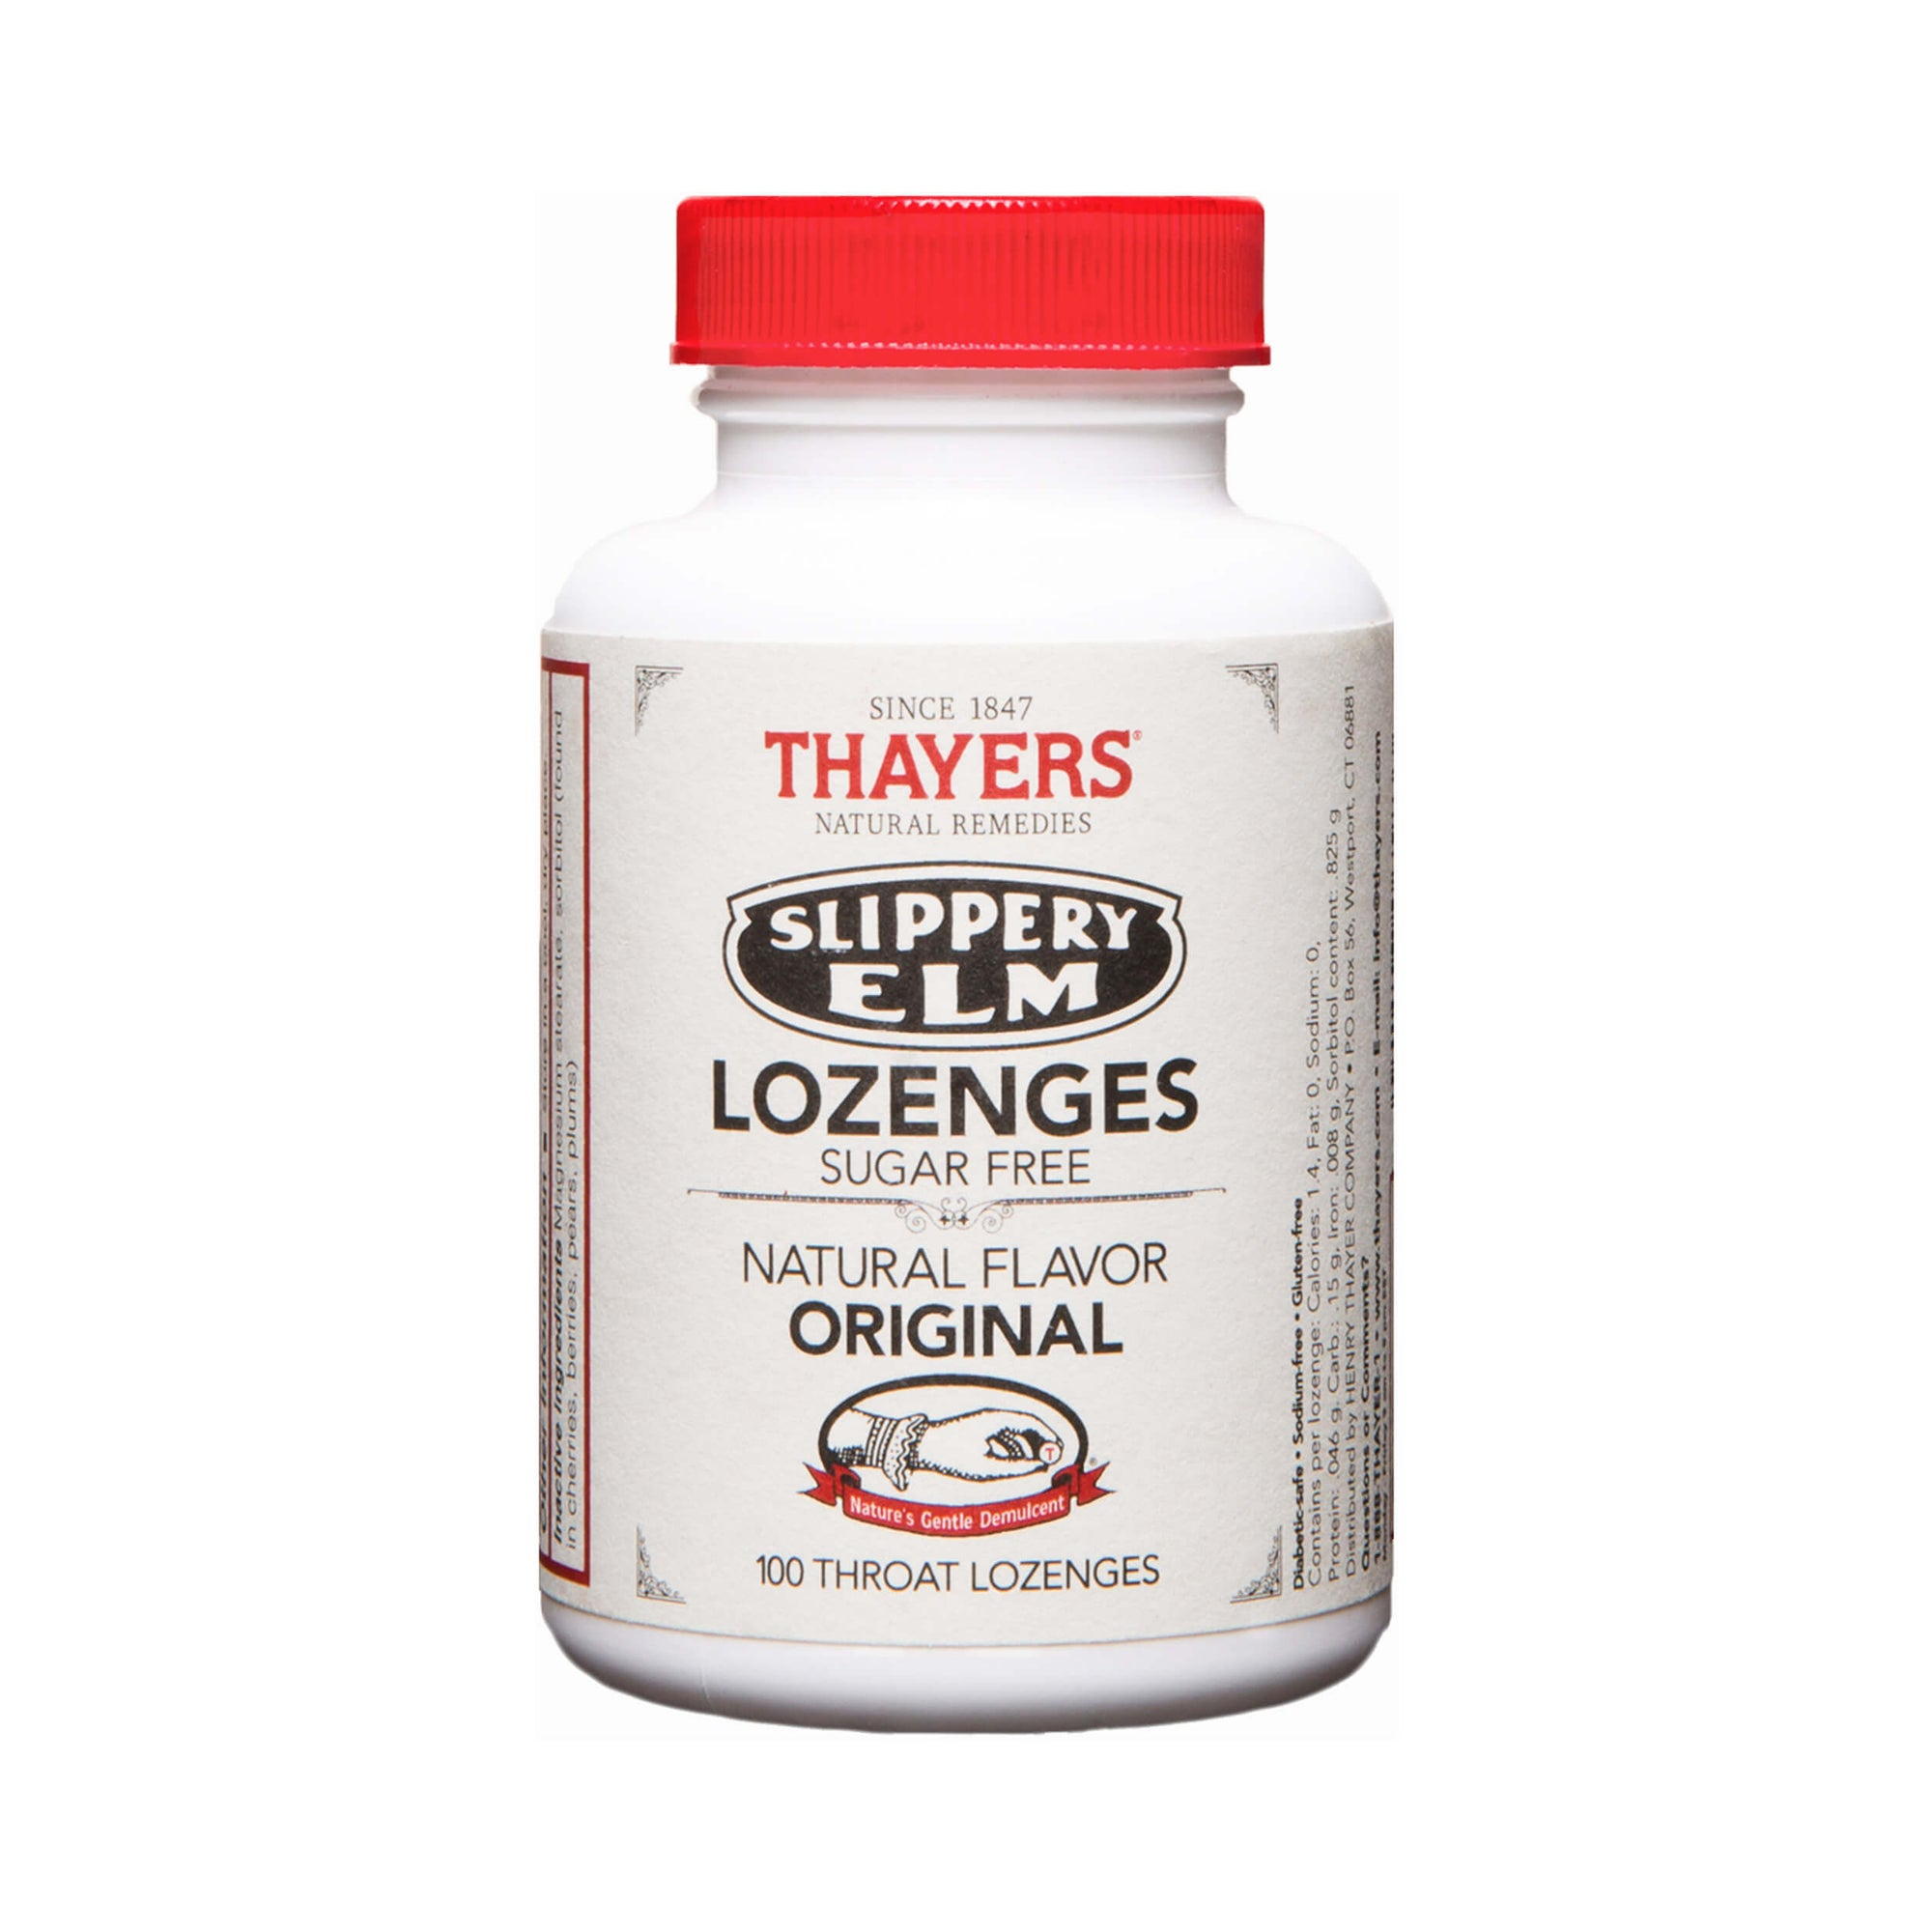 Thayers Sugar-Free Slippery Elm Lozenges Original 100 Lozenges